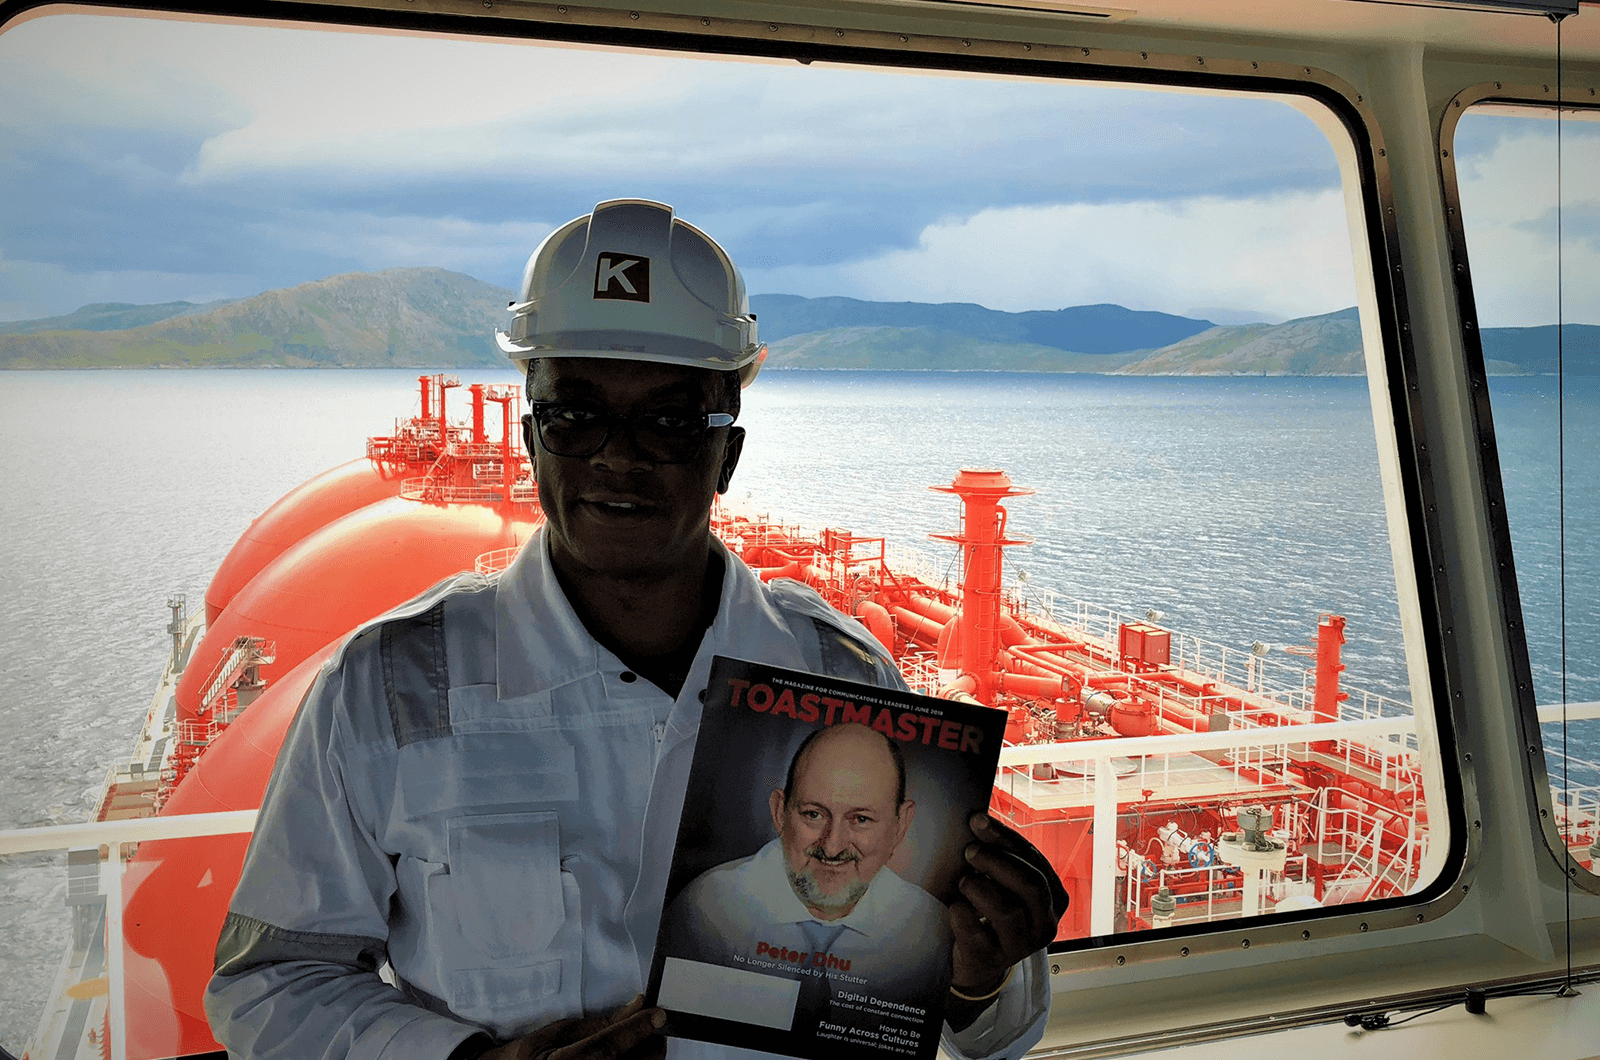 Ken Essien, ACS, ALB, of London, United Kingdom, works on a Liquified Natural Gas Tanker in the Norwegian Sea.